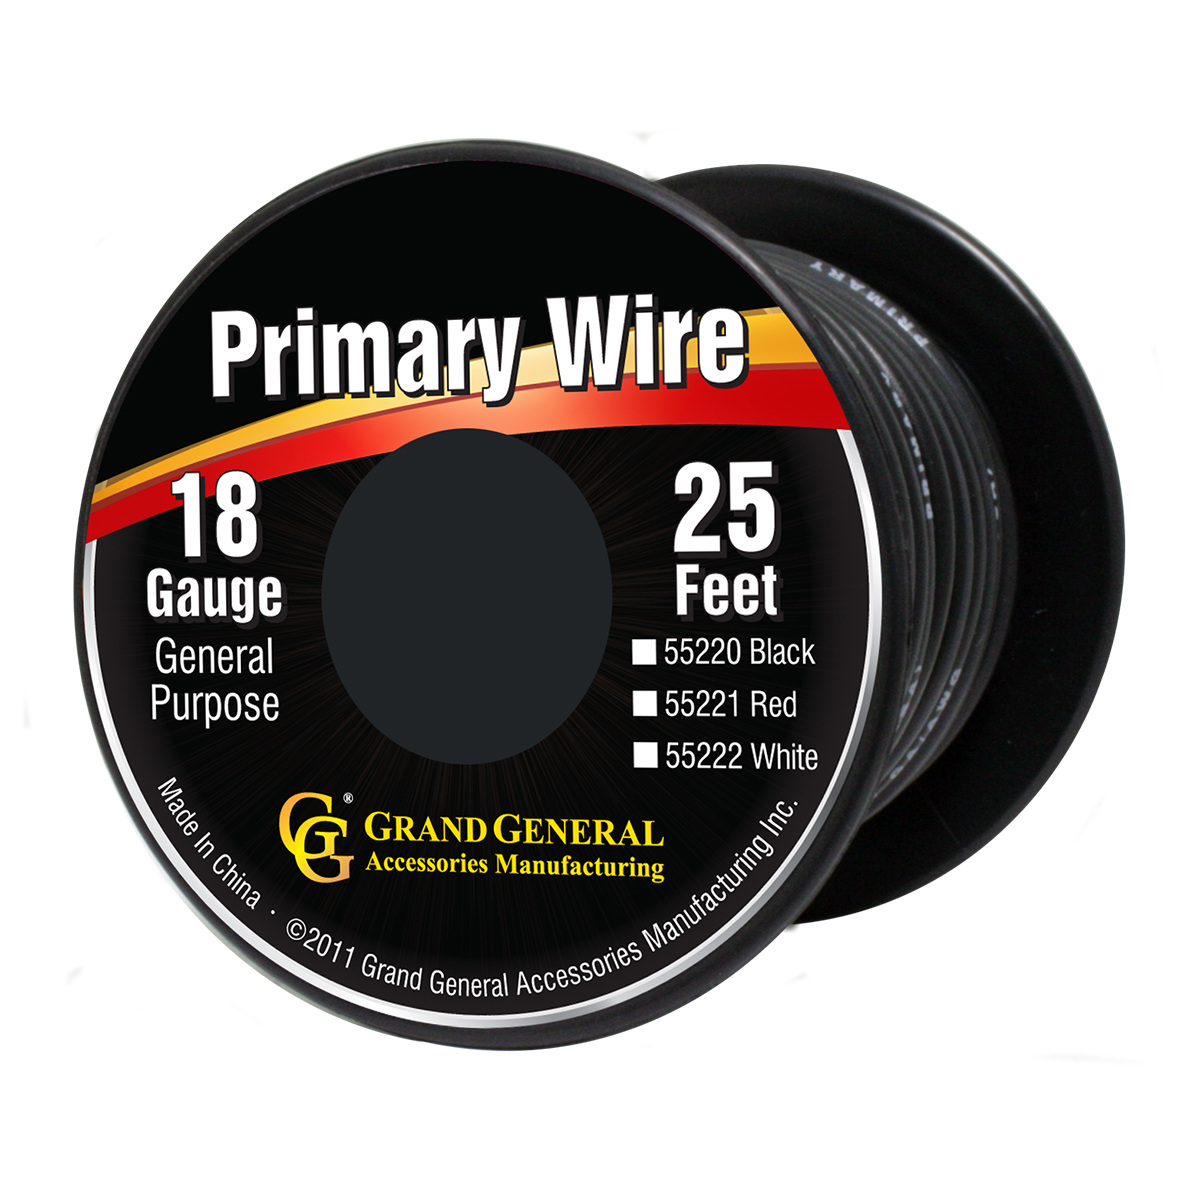 55220/55220SP Primary Wire in 18 Gauge, 25 Feet